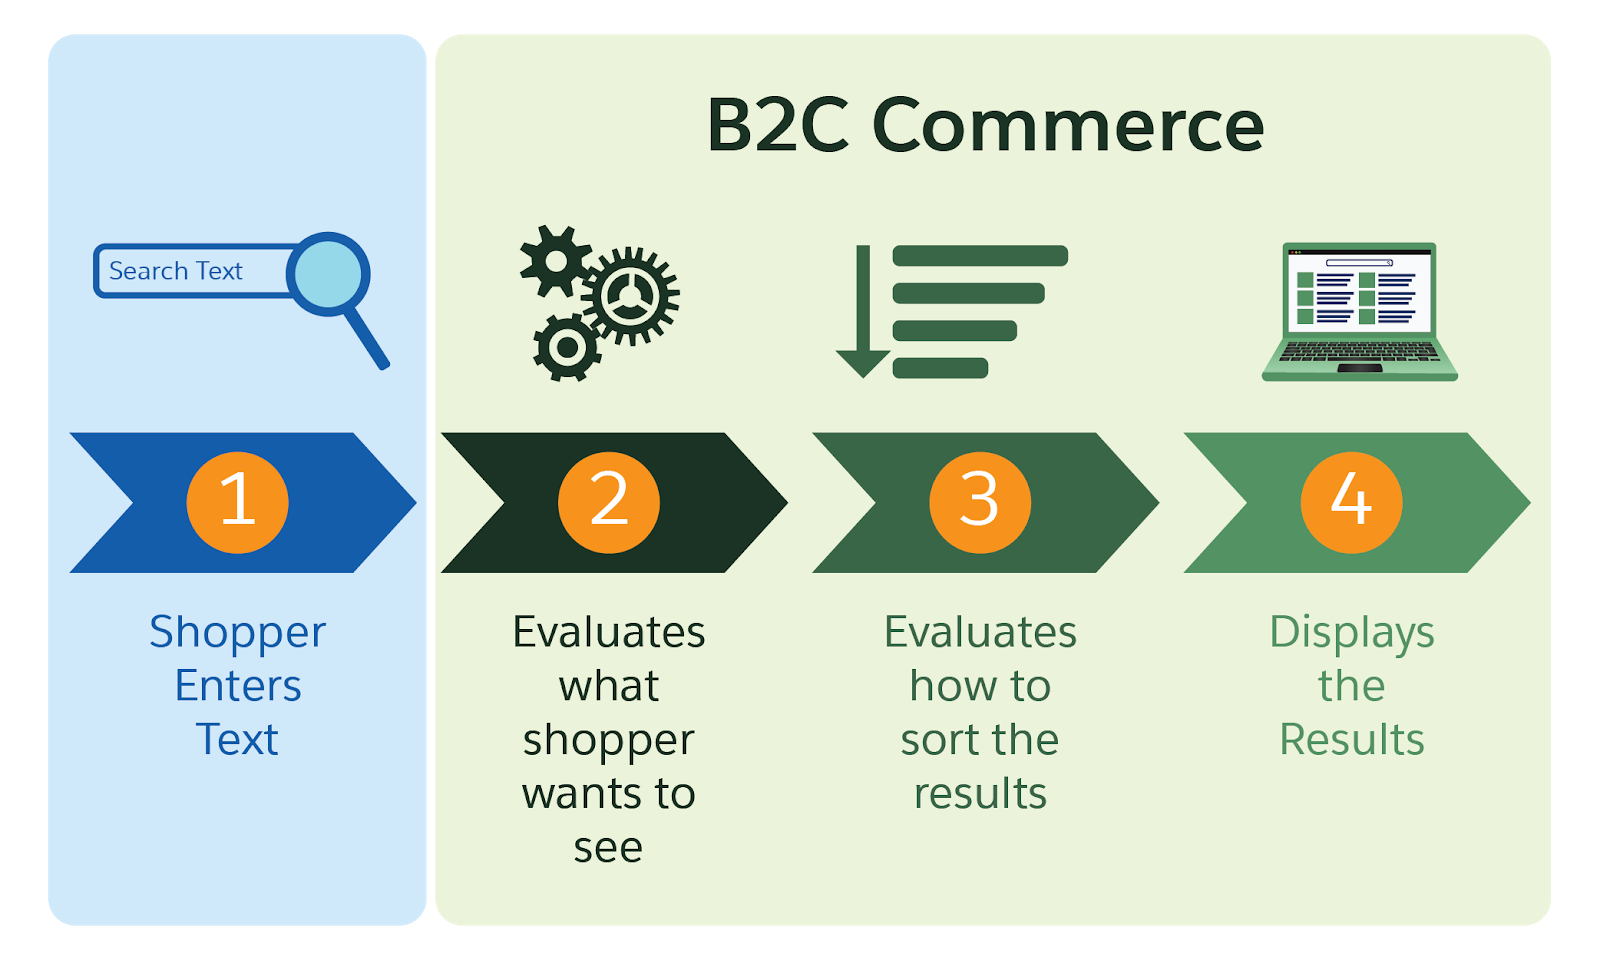 Once the shopper enters search text, B2C Commerce evaluates what they want to see and how to sort the results, then displays the results.